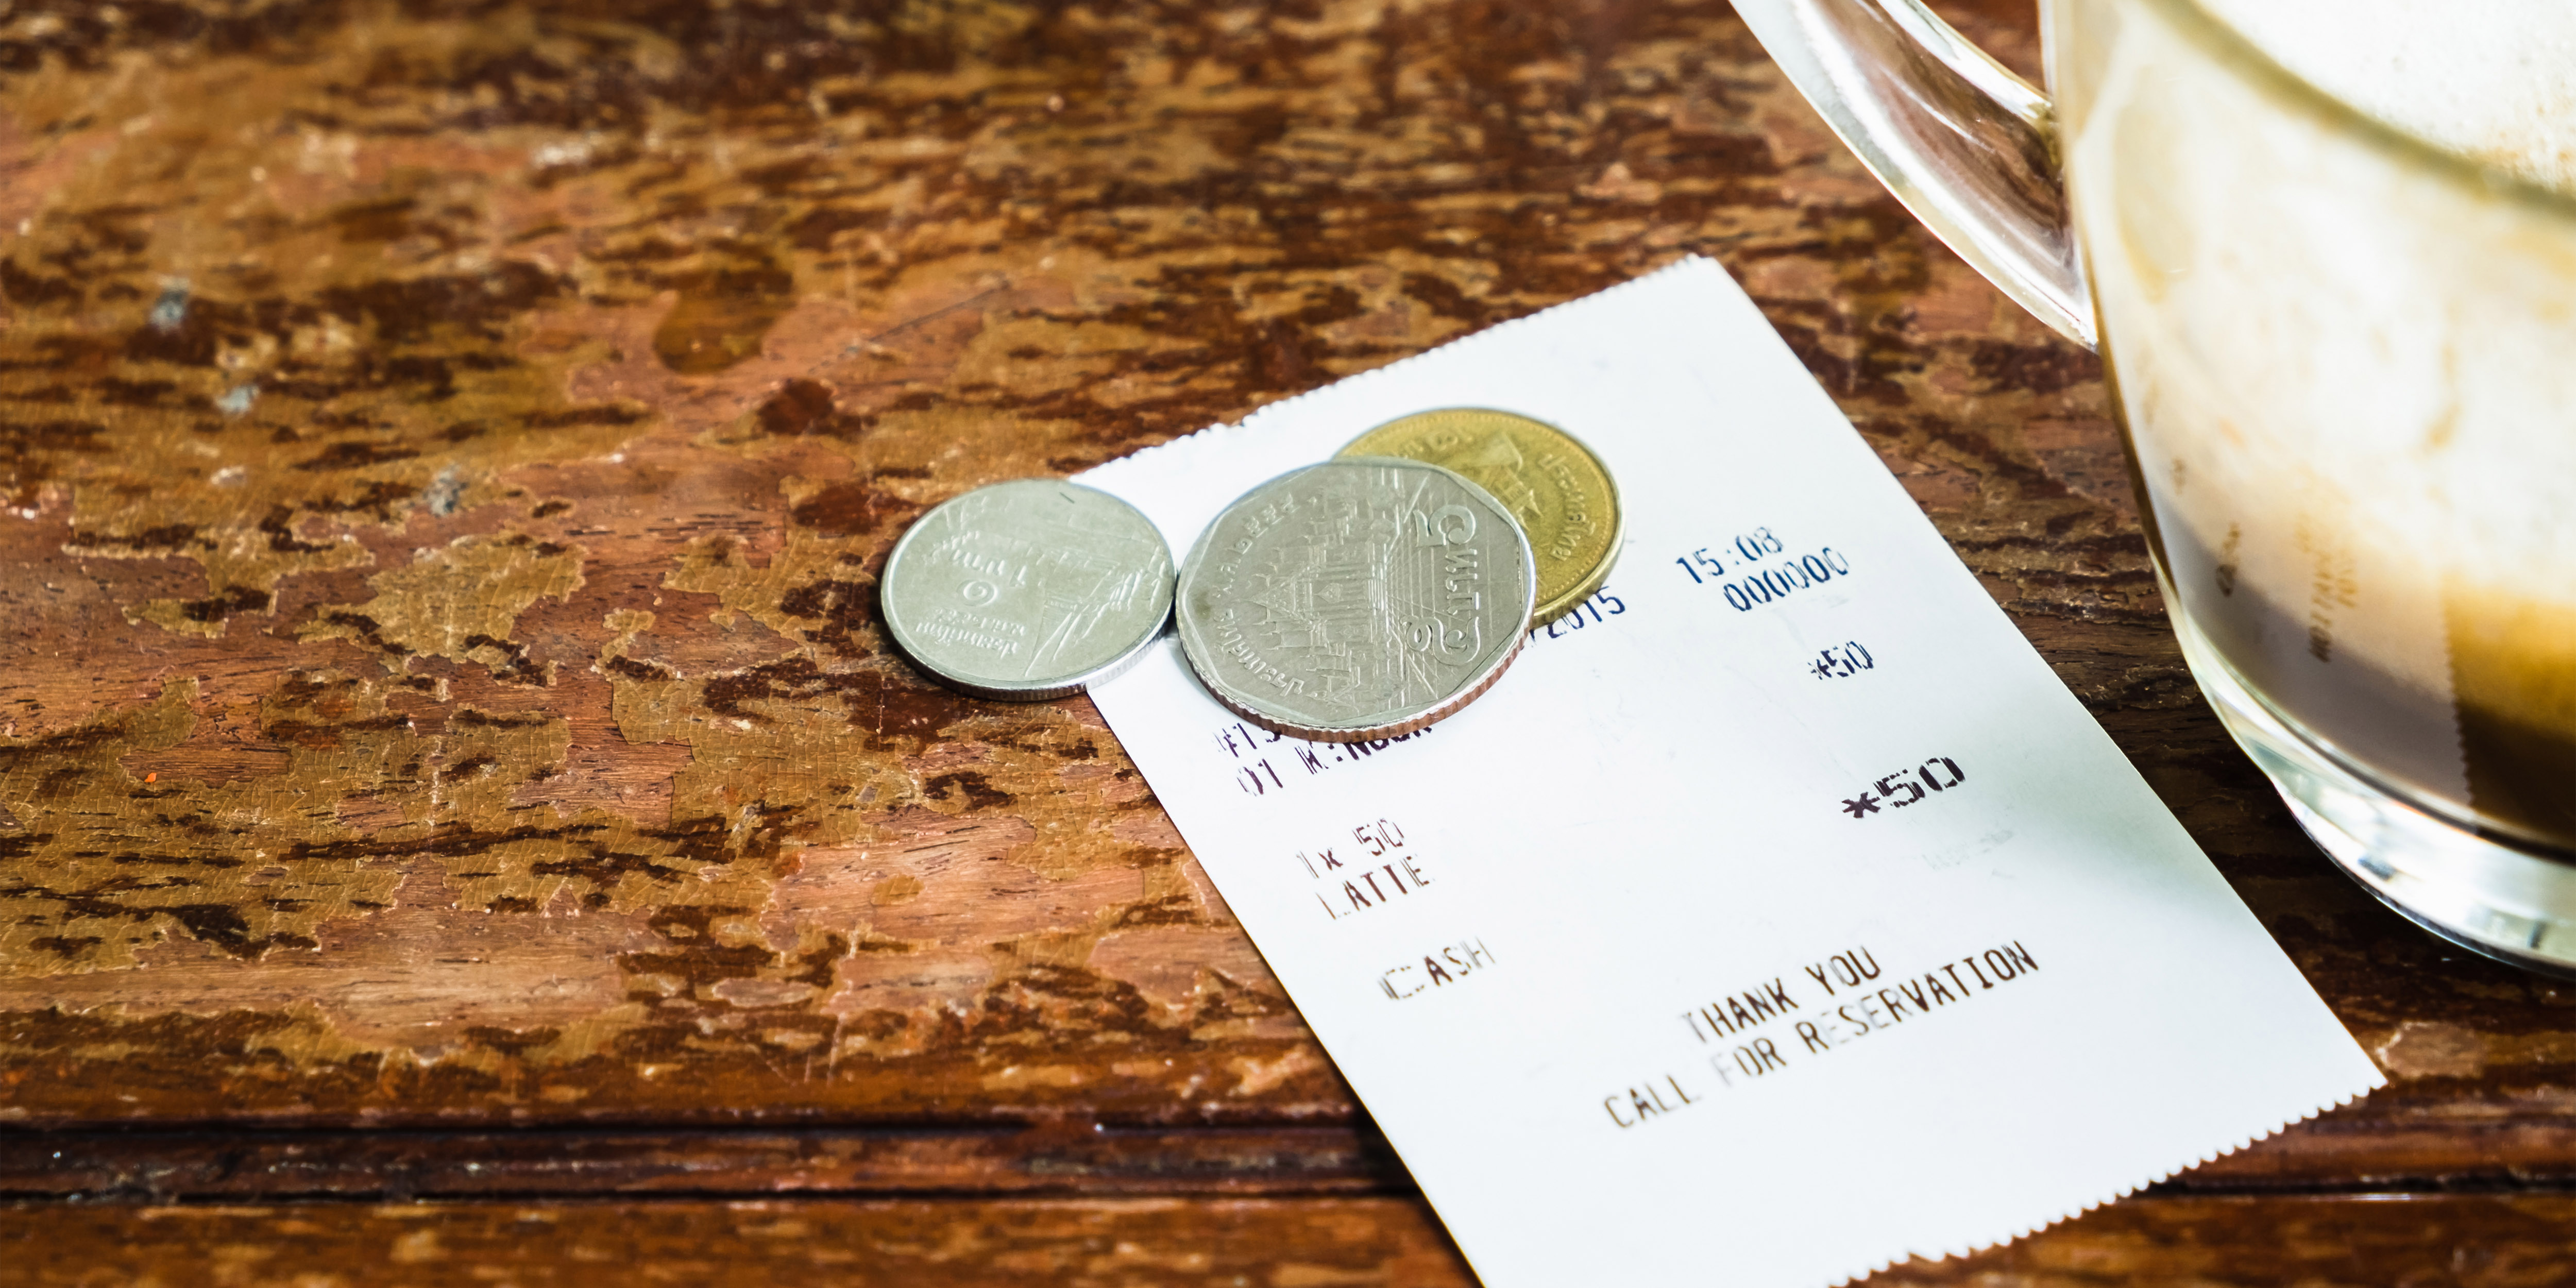 tip on table with receipt and beer